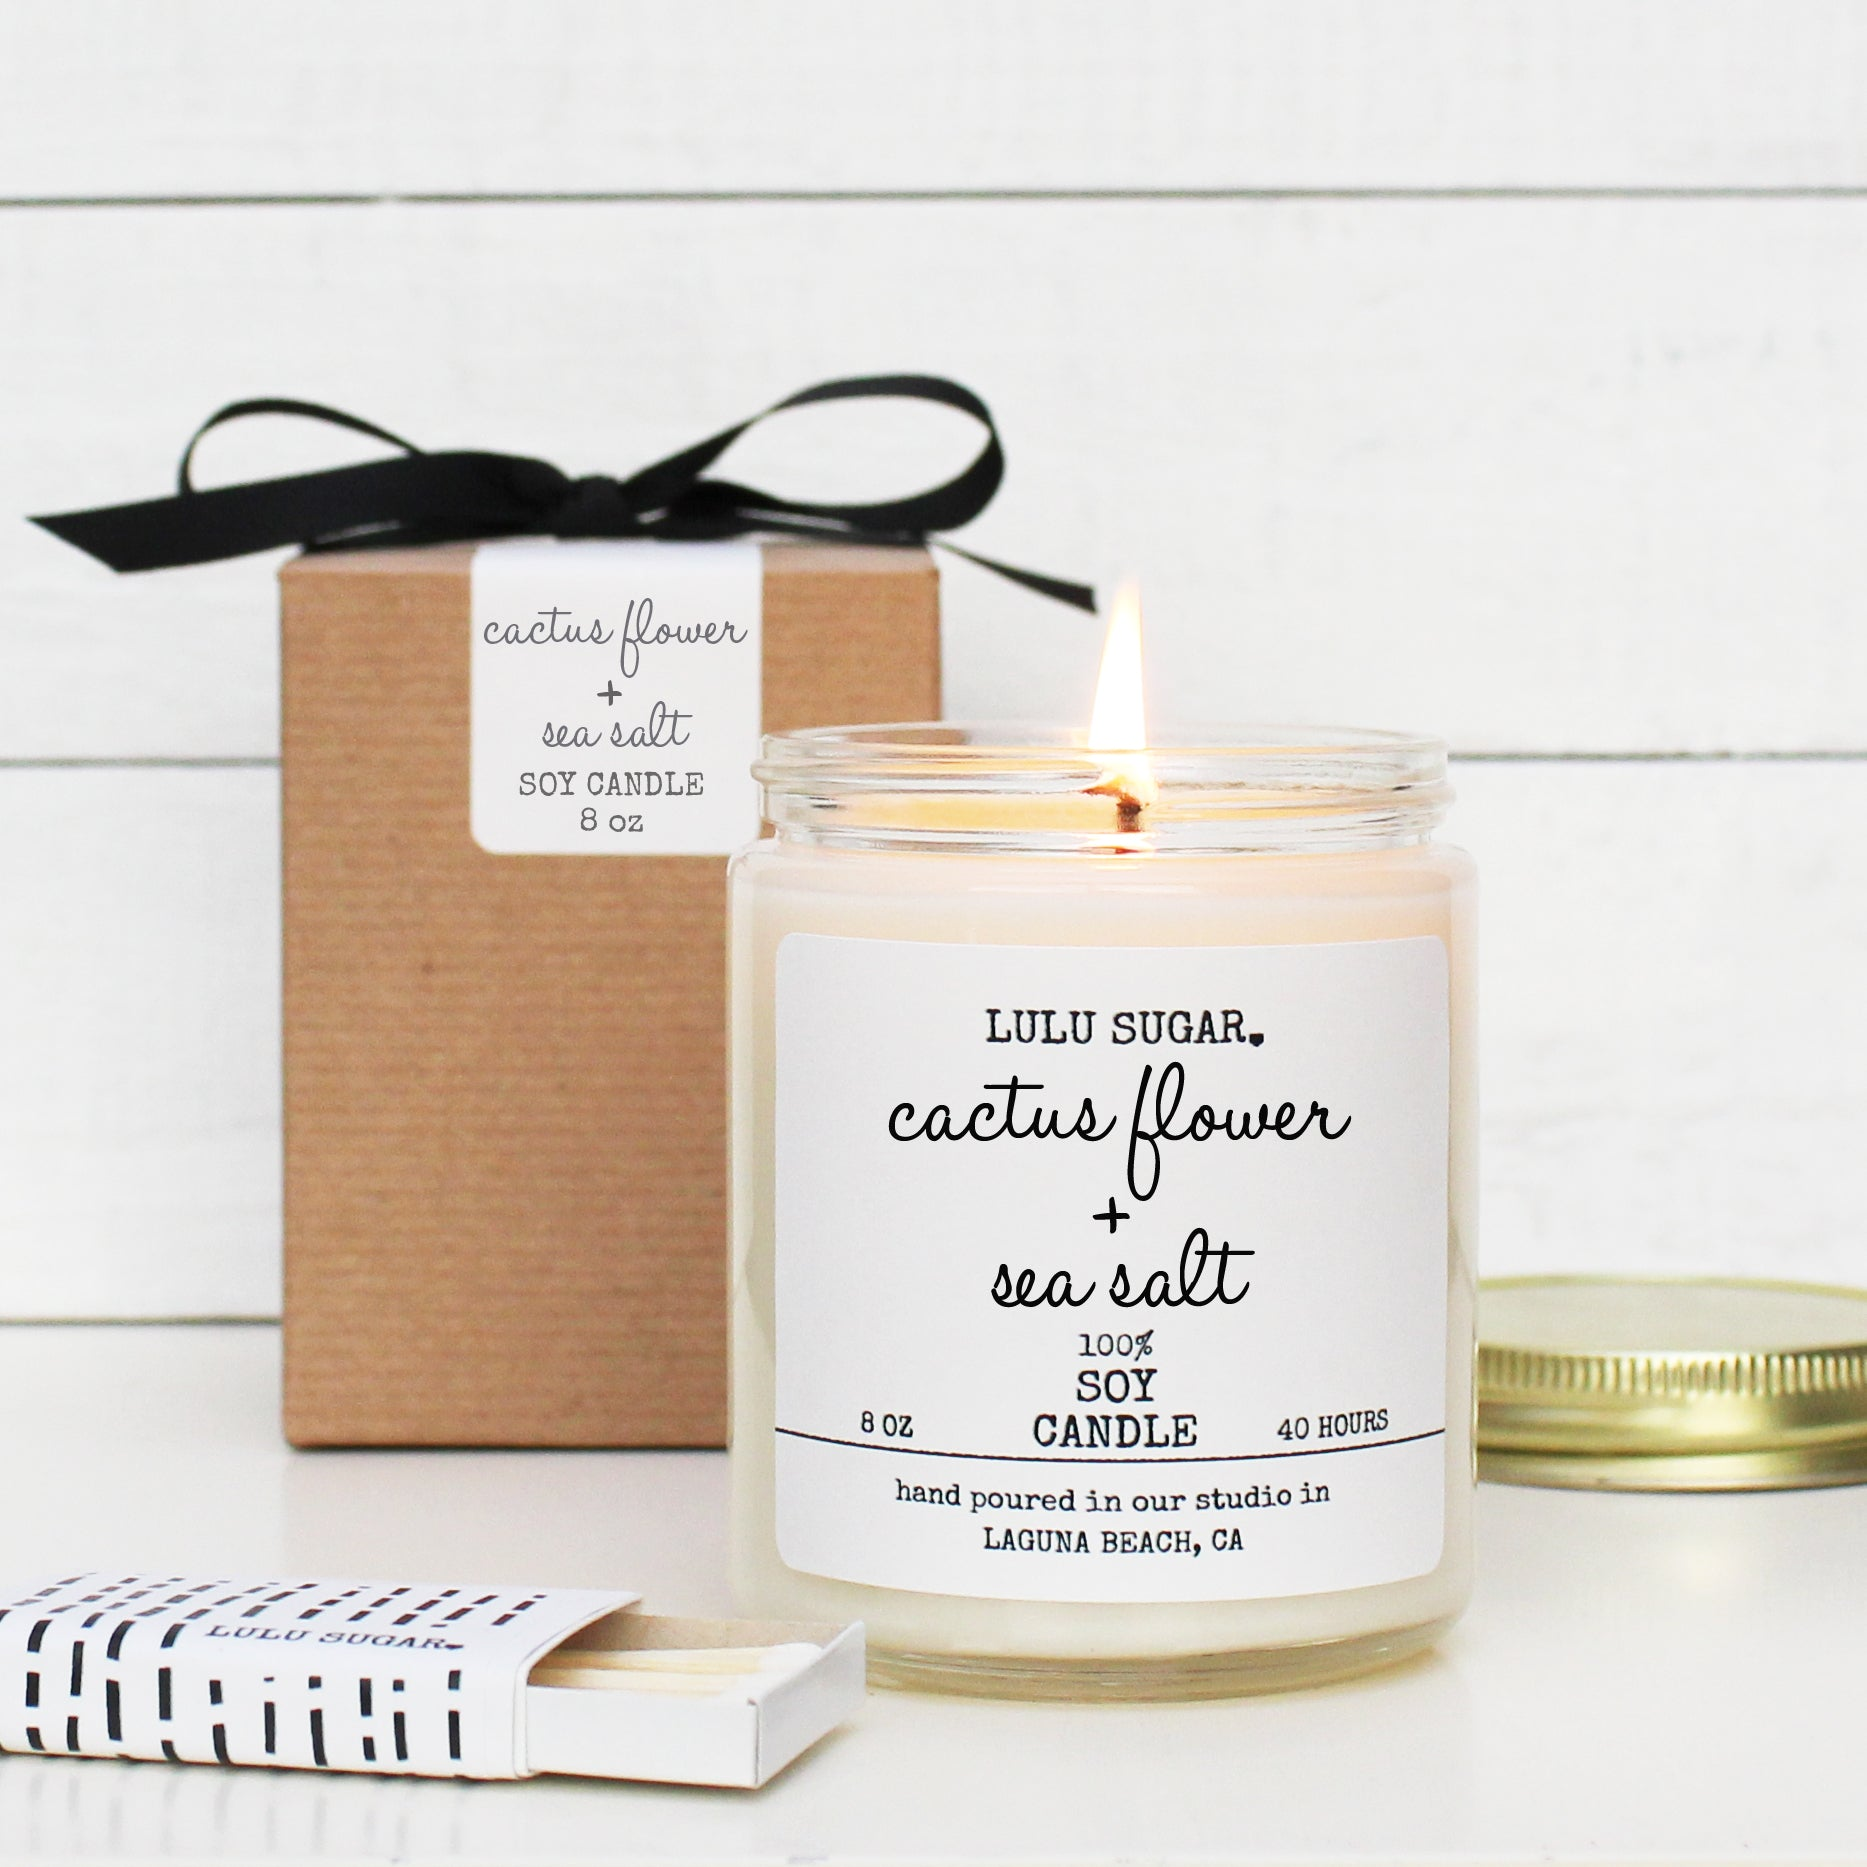 Cactus Flower + Sea Salt 8 oz Candle